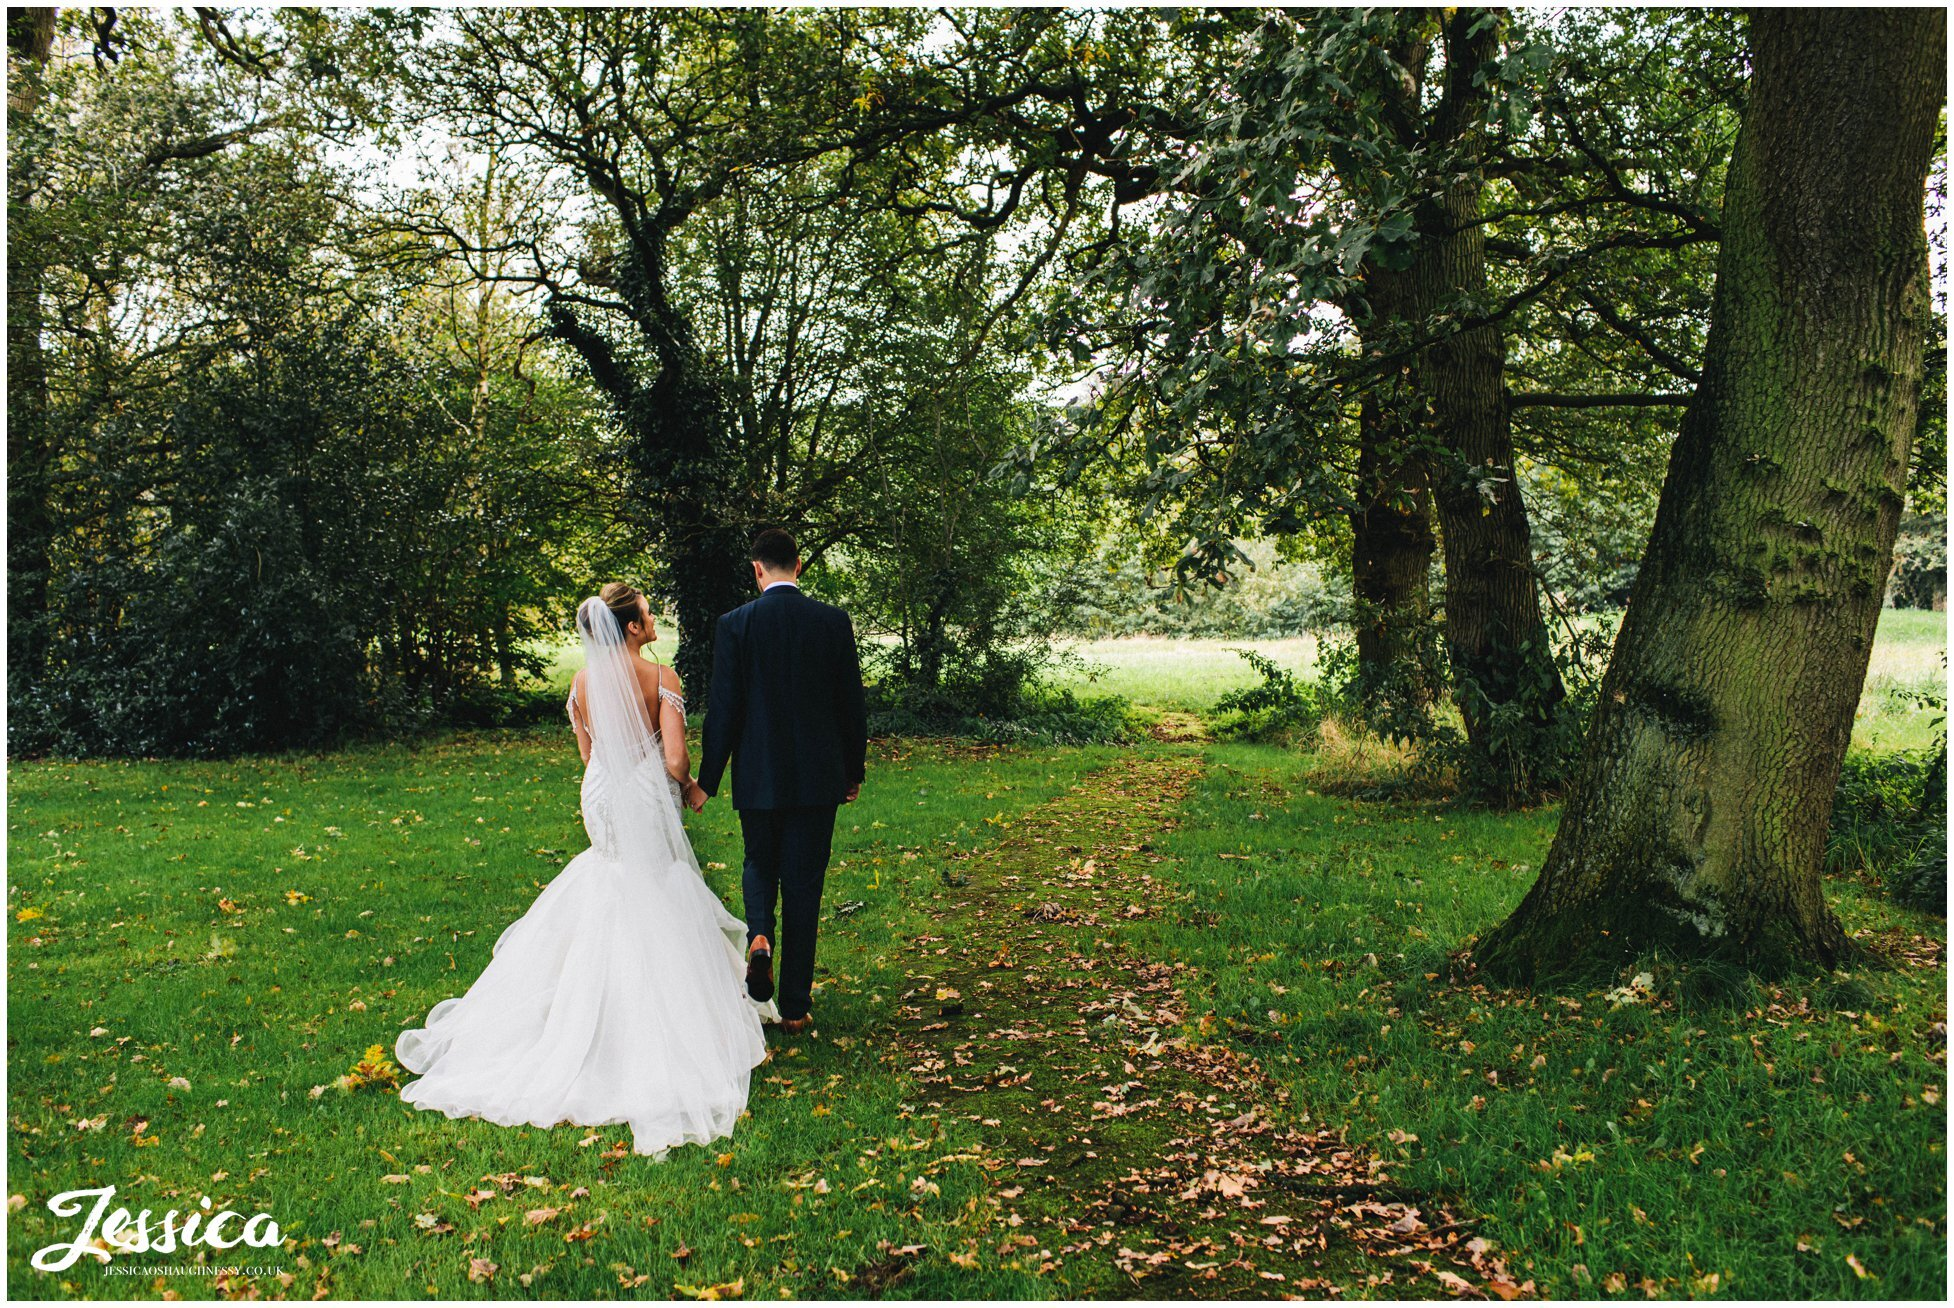 newly wed's walk through the trees in the grounds of their cheshire wedding venue